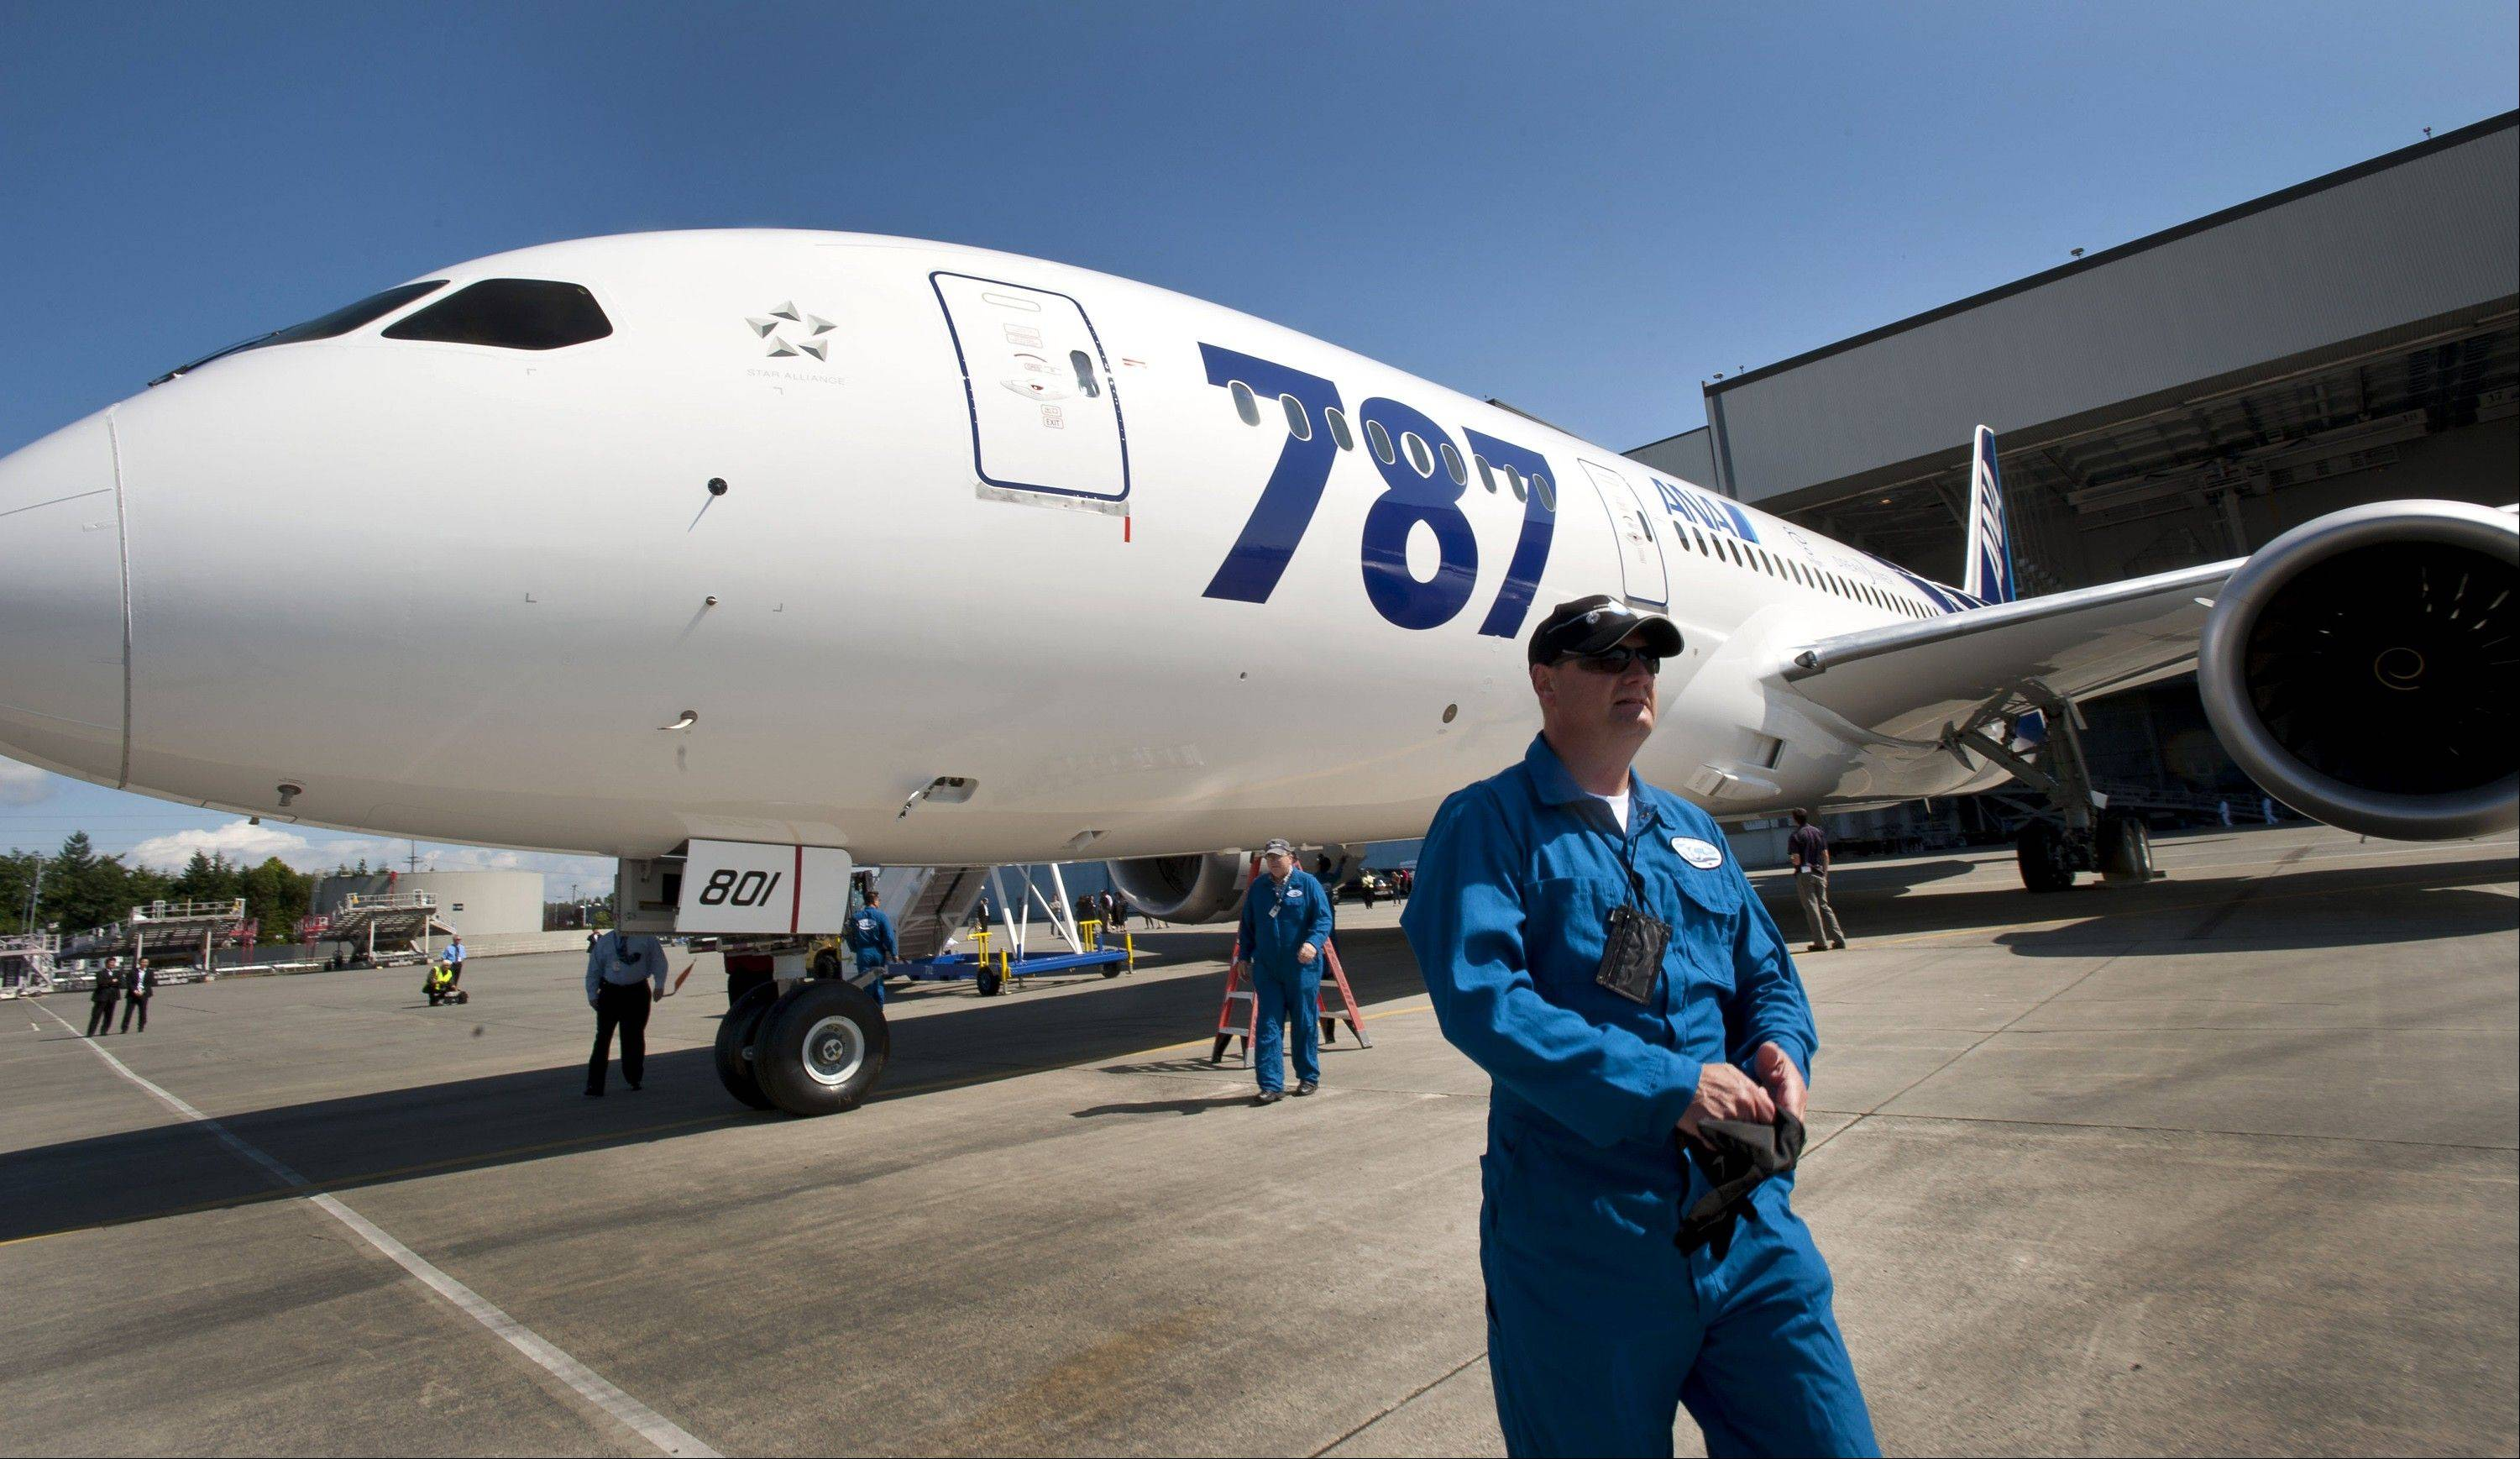 Boeing Co.'s new 787 Dreamliner, the world's first composite-plastic commercial jet, finished its 20- month flight-test program last weekend in the final hurdle toward approval for passenger service that could start next month.